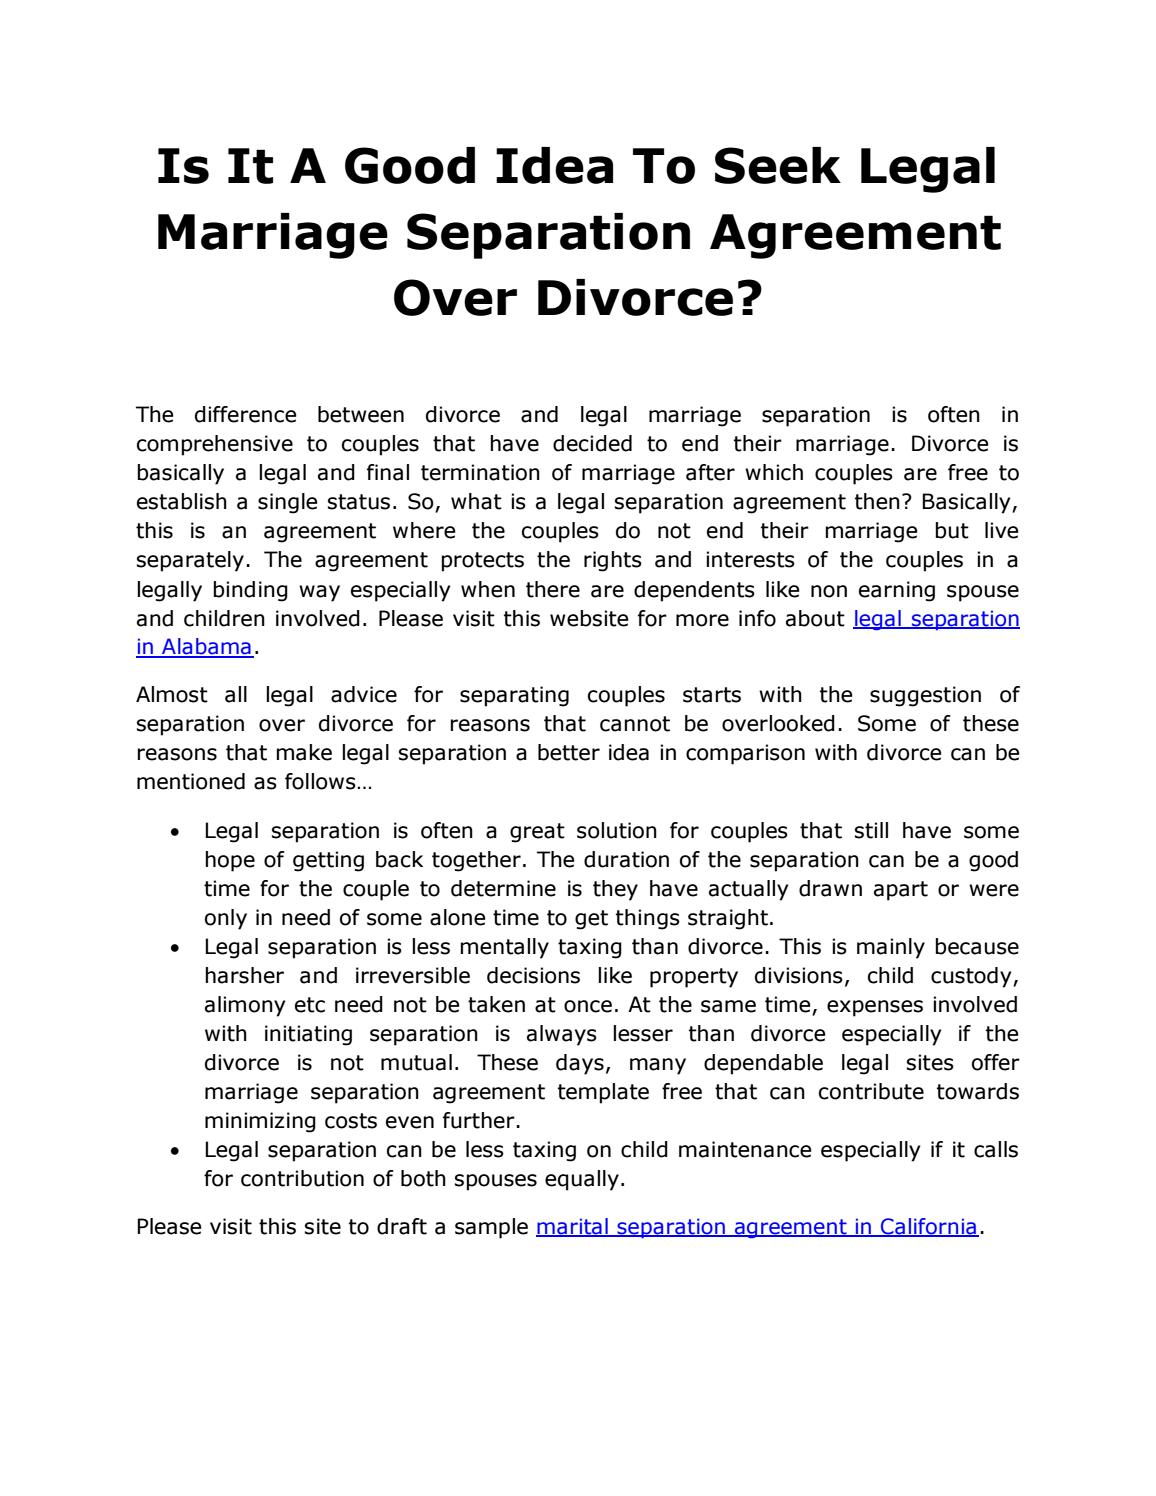 Is It A Good Idea To Seek Legal Marriage Separation Agreement Over